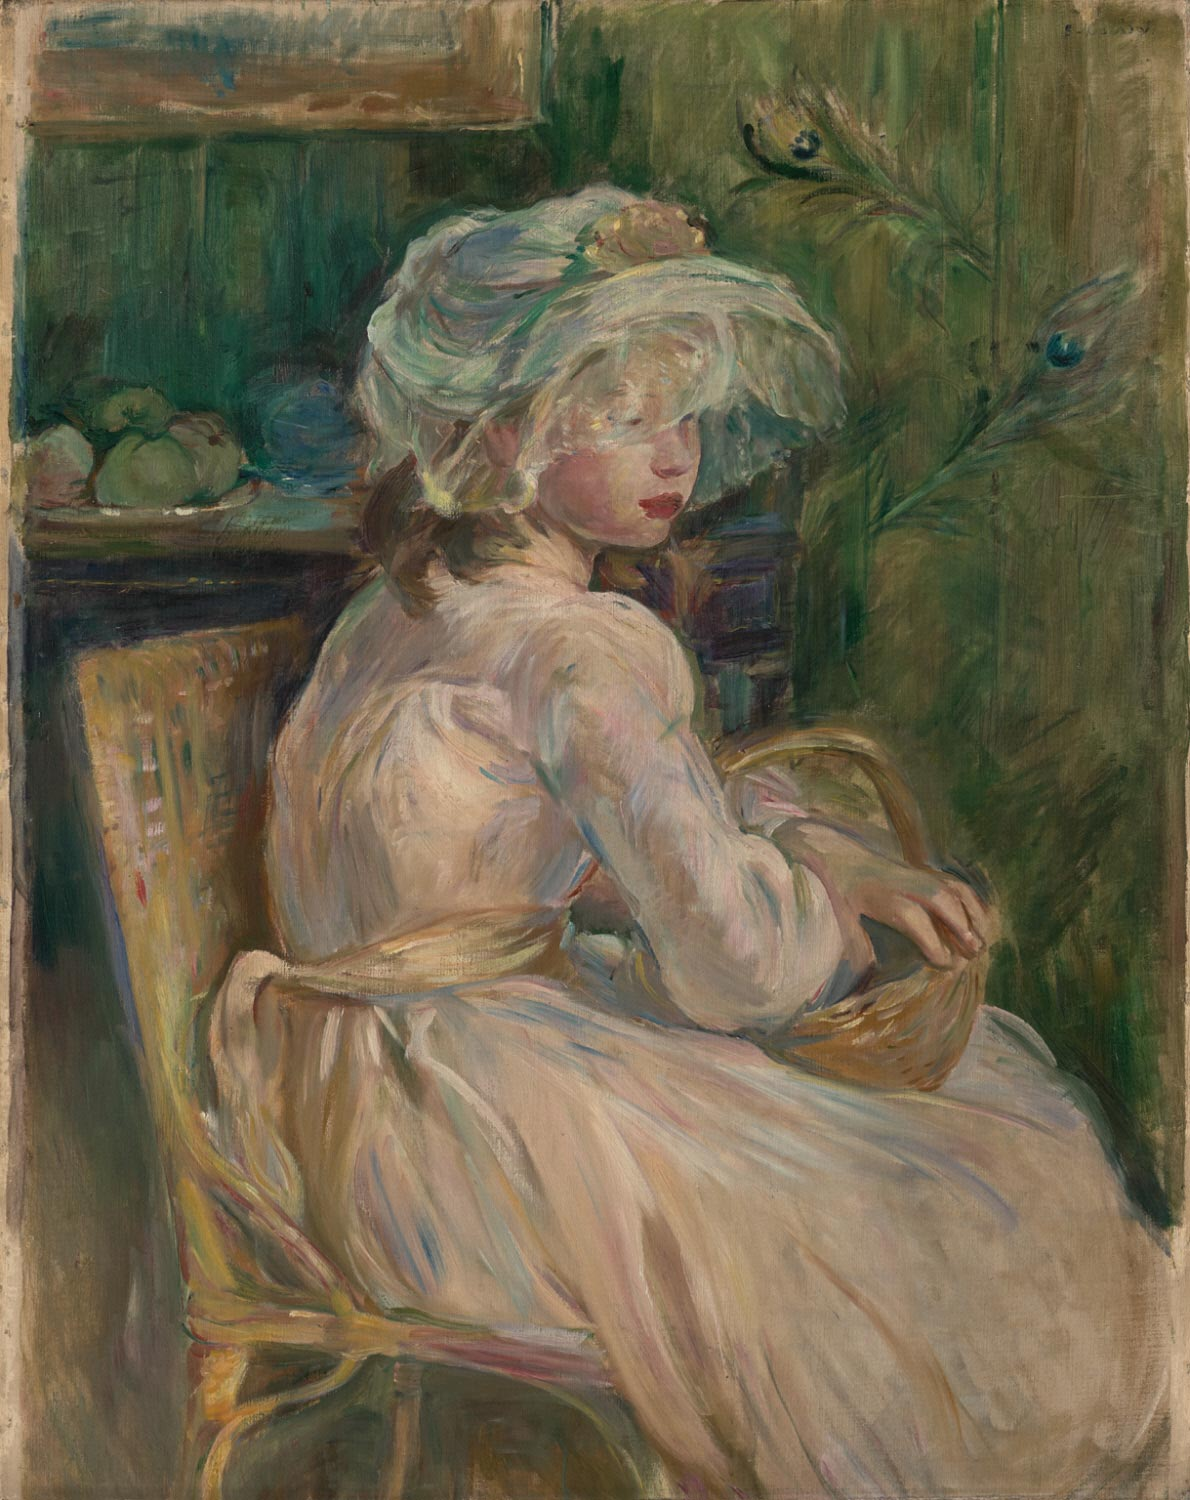 """Philadelphia Museum of Art on Twitter: """"Happy birthday to #BertheMorisot,  who was born #onthisday in 1841. A member of the #Impressionists, she often  painted domestic scenes such as this one. https://t.co/vmokHpZPe4…  https://t.co/c5ofFF0TWh"""""""